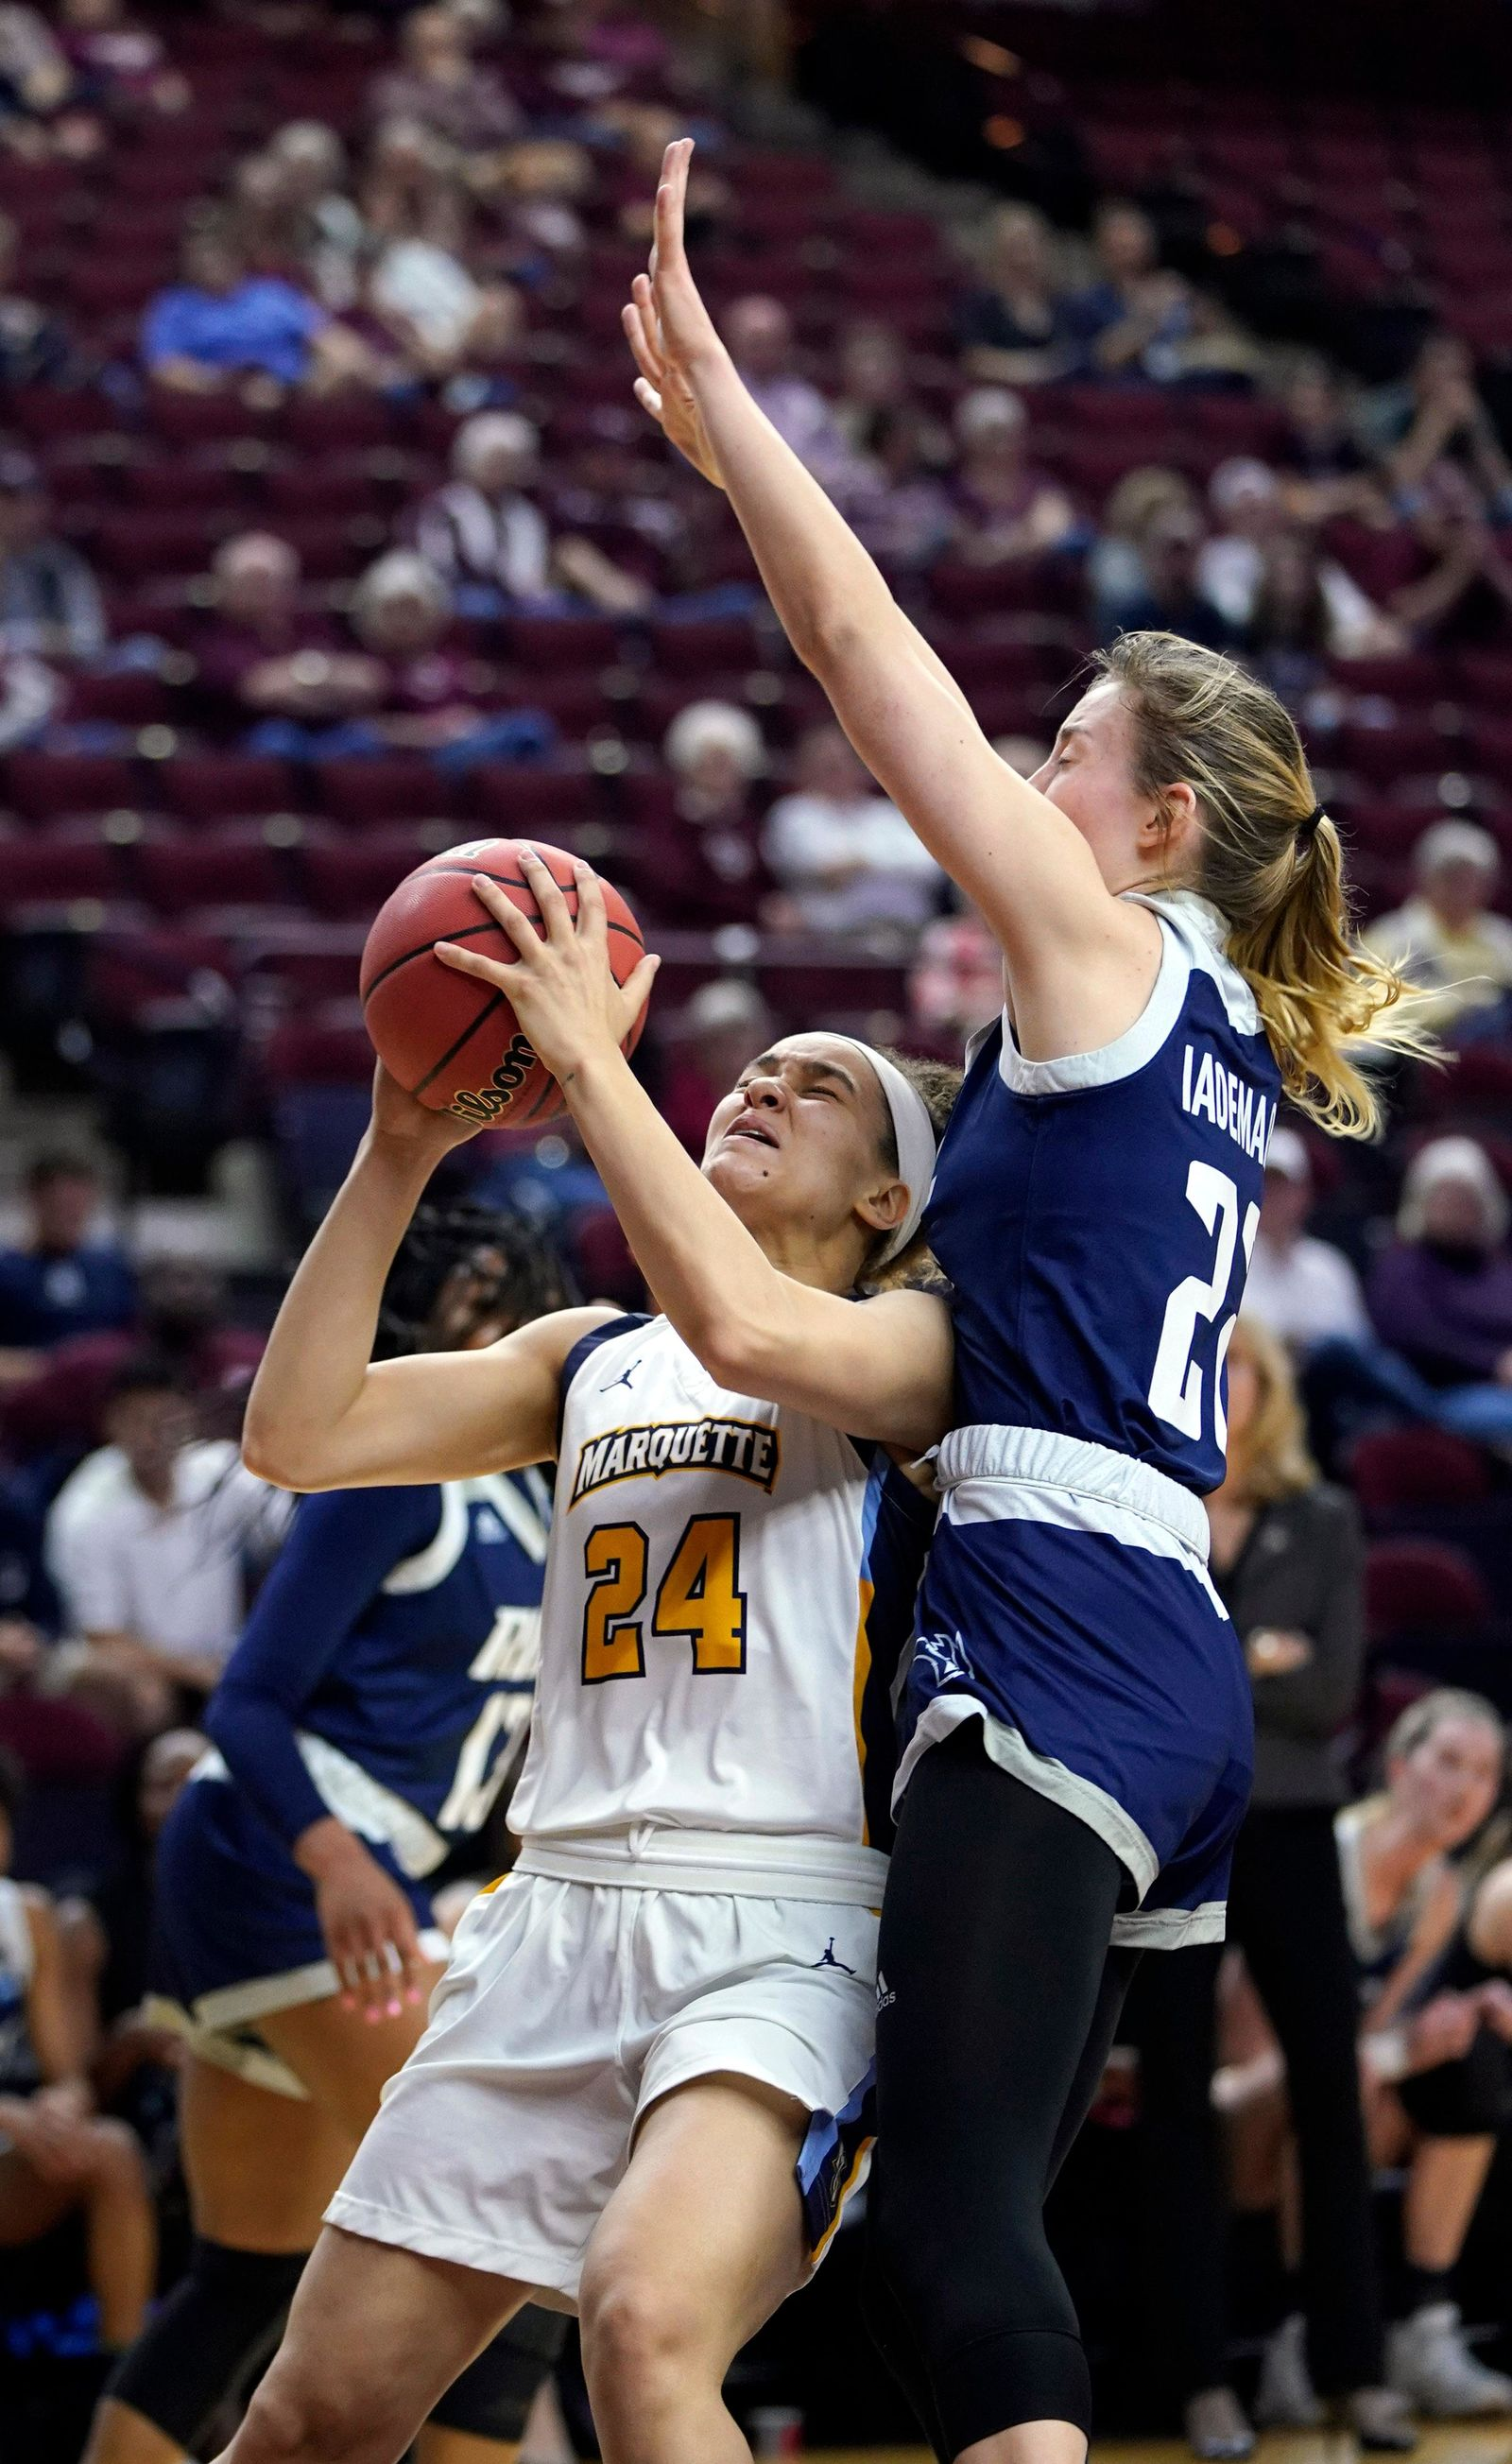 Marquette's Selena Lott (24) shoots as Rice's Nicole Iademarco (22) defends during the first half of a first round women's college basketball game in the NCAA Tournament Friday, March 22, 2019, in College Station, Texas. (AP Photo/David J. Phillip)